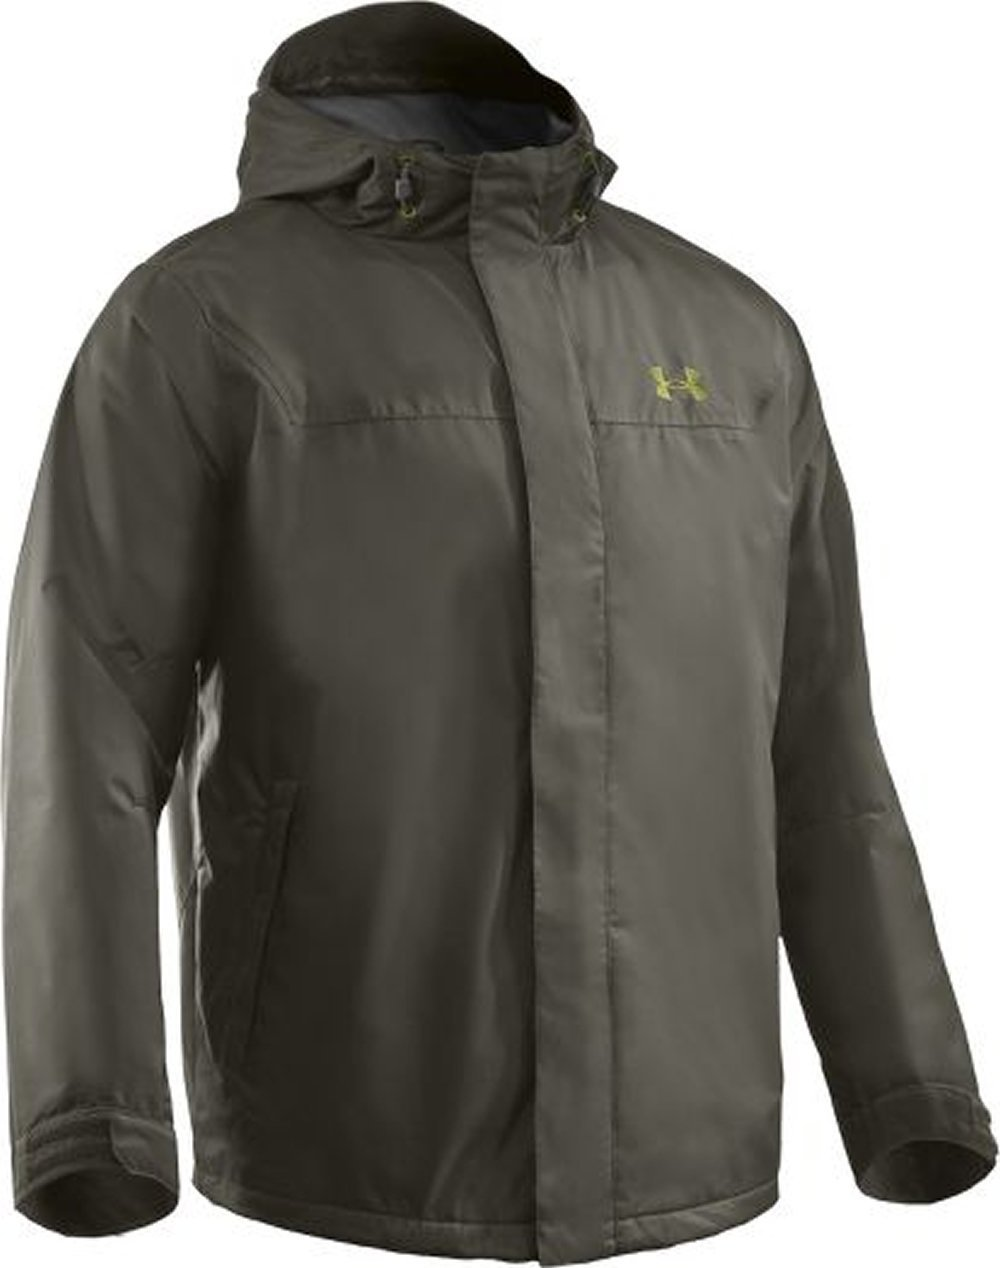 Under Armour Mens Aerofoil Shell Jacket